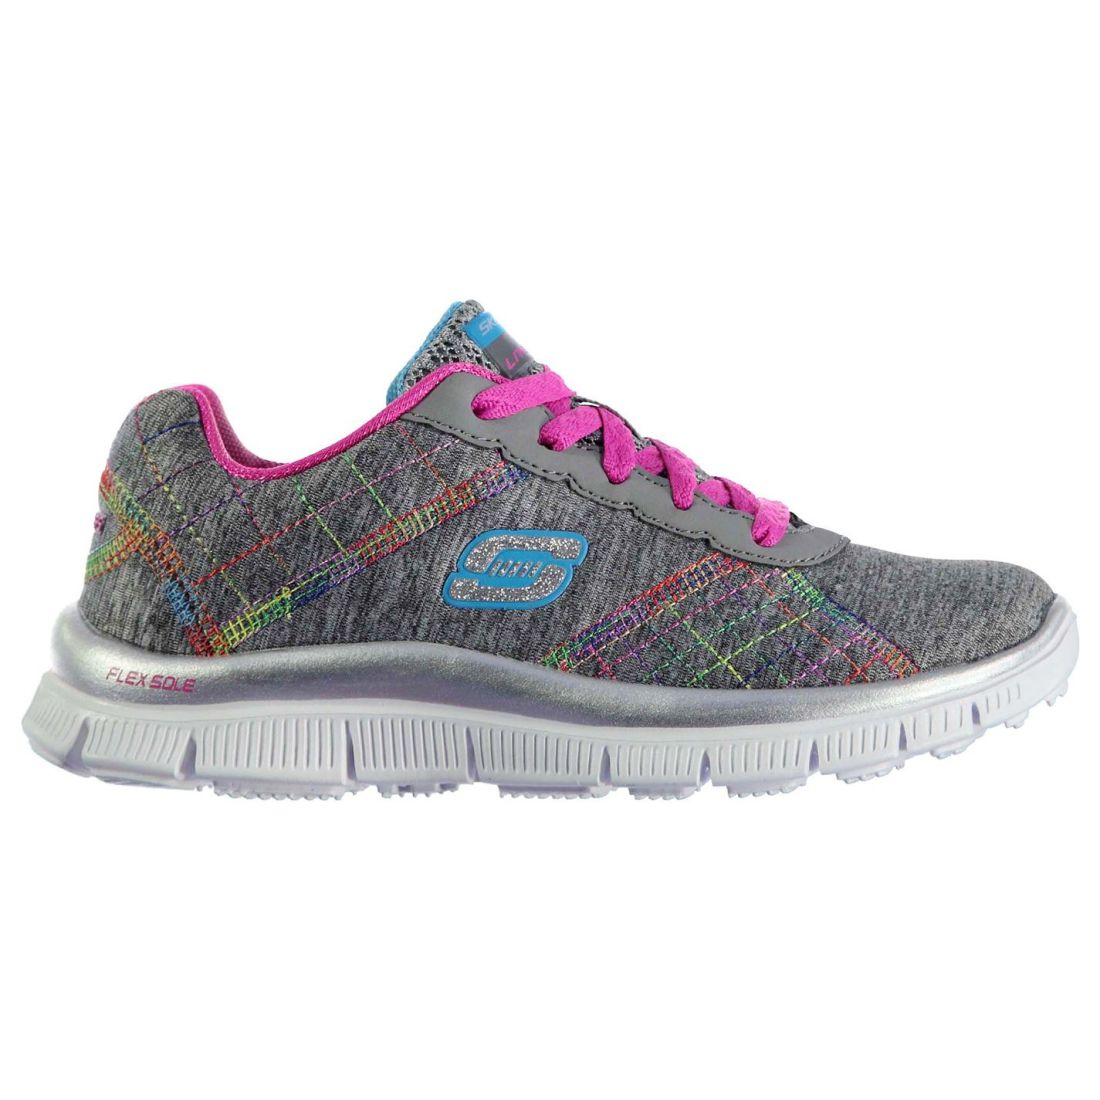 Skechers Girls Appeal Its Electric Kids Trainers shoes Lace Up Textile Upper